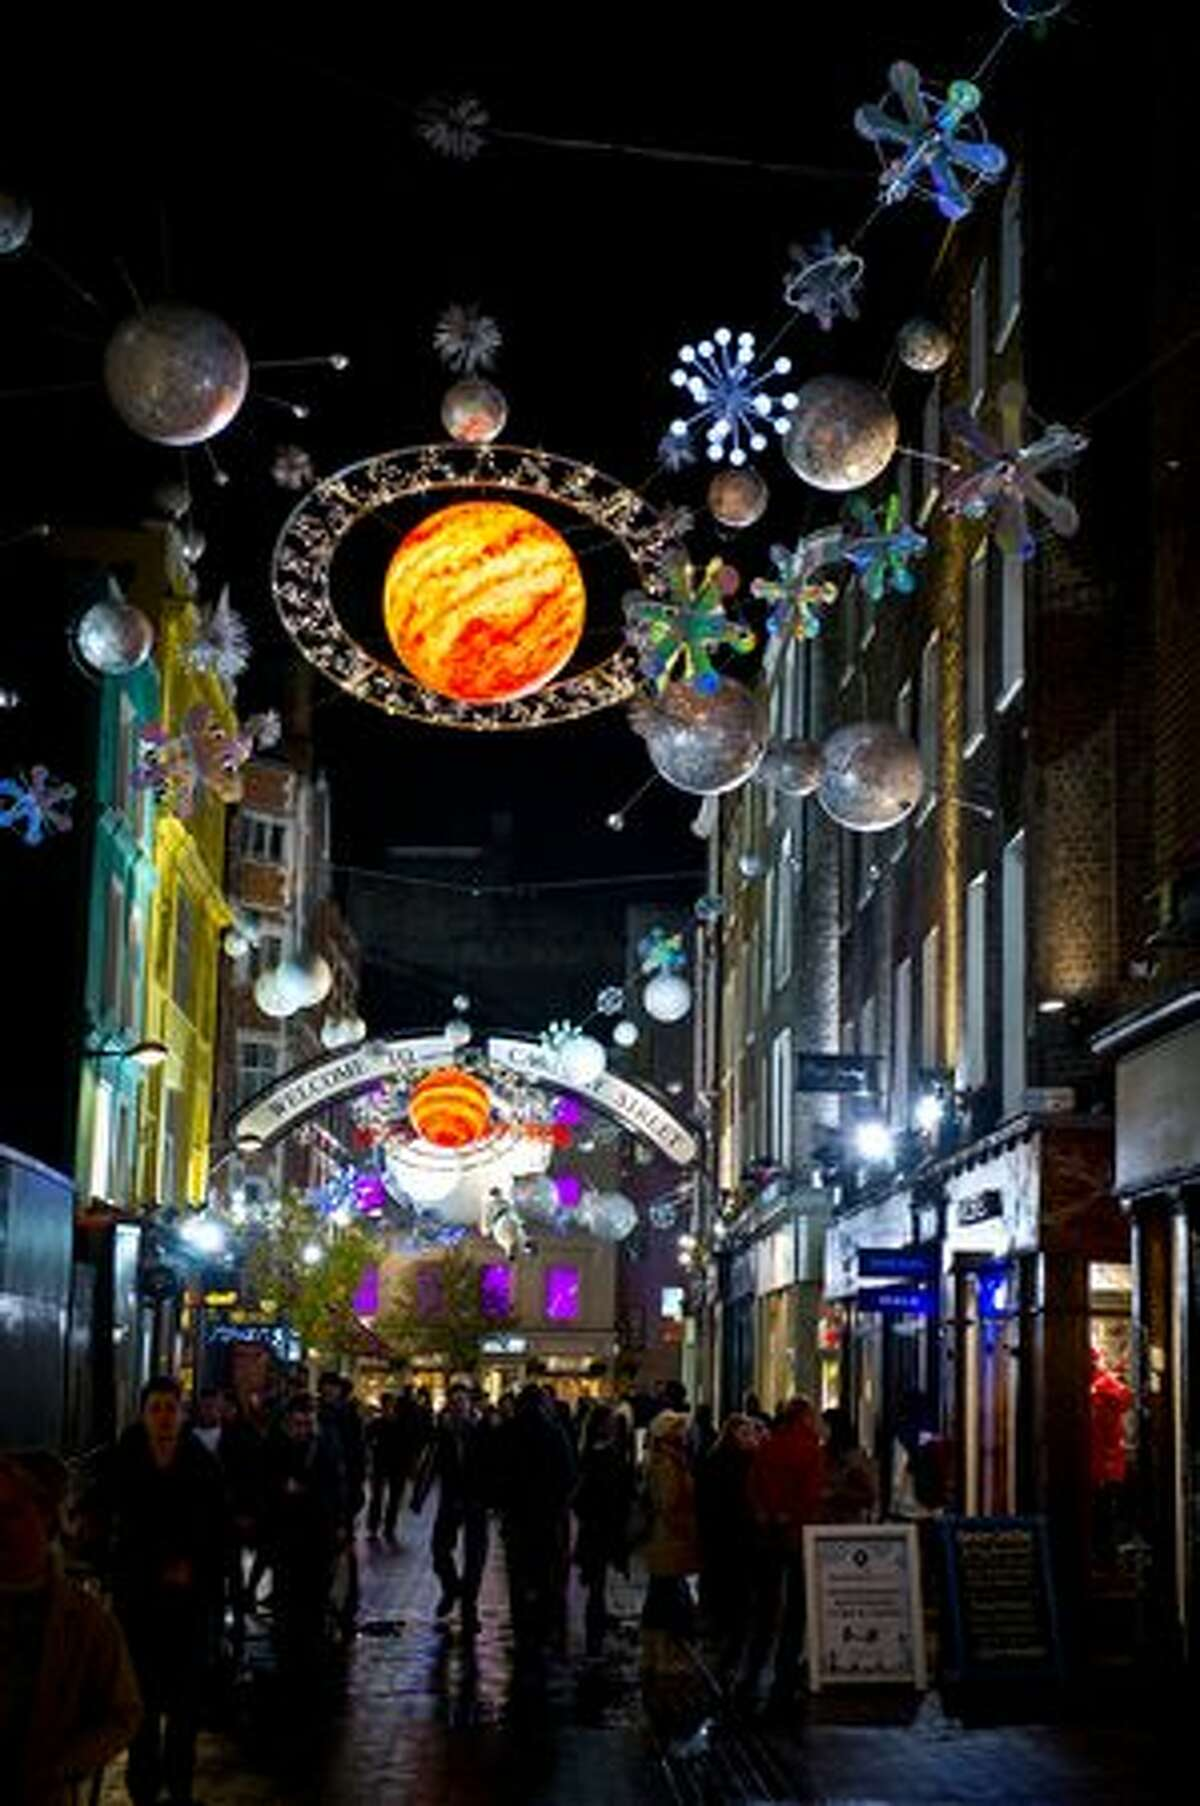 Pedestrians walk under the Christmas lights over Carnaby Street in London, England.